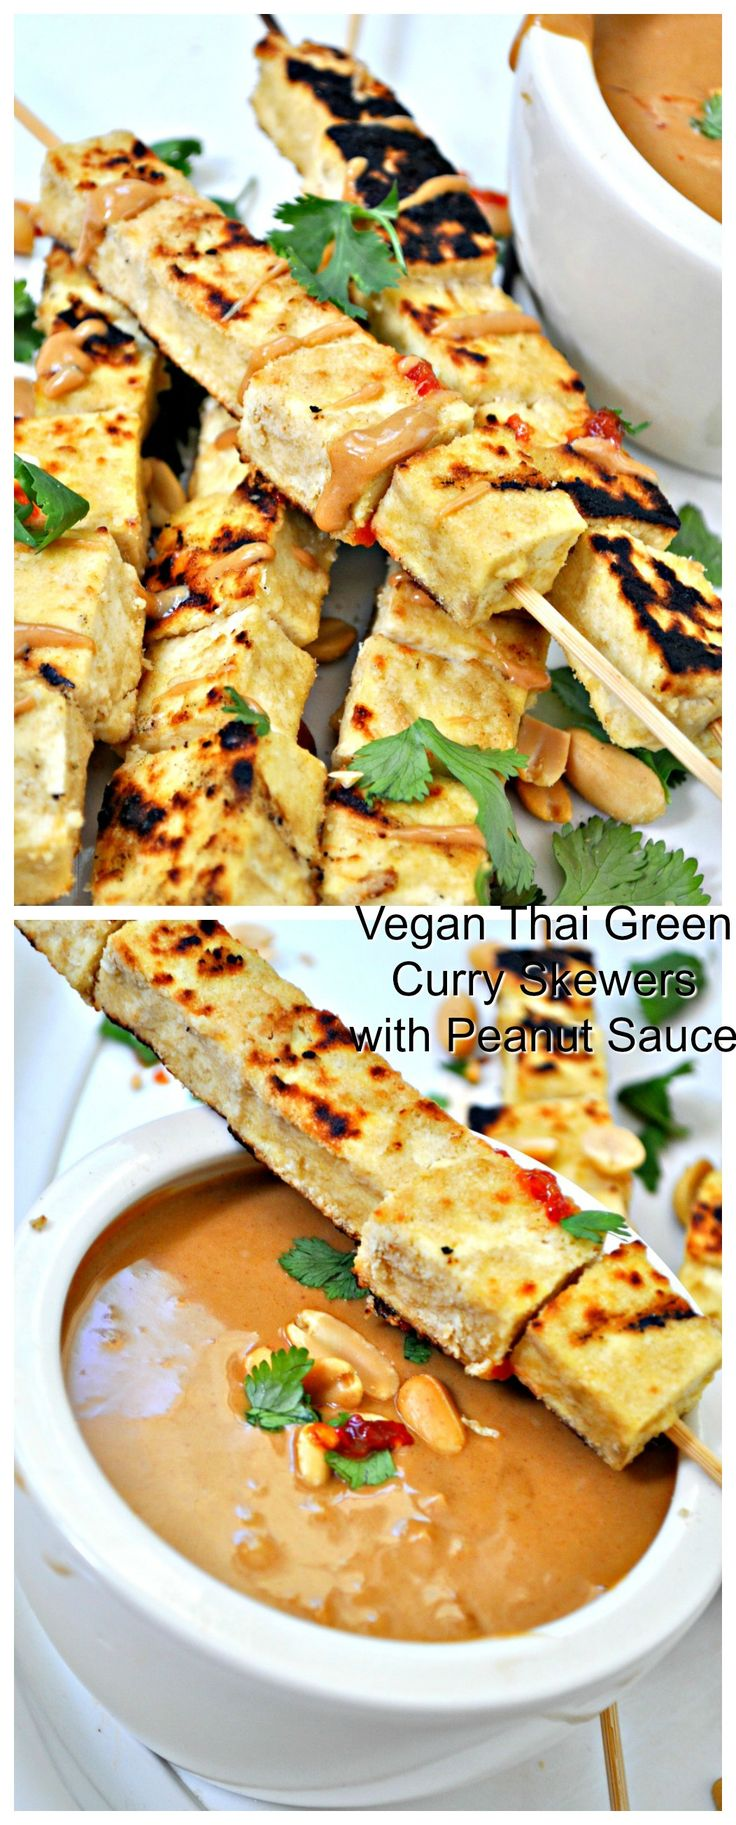 Vegan Thai Green Curry Tofu Skewers with Peanut Sauce